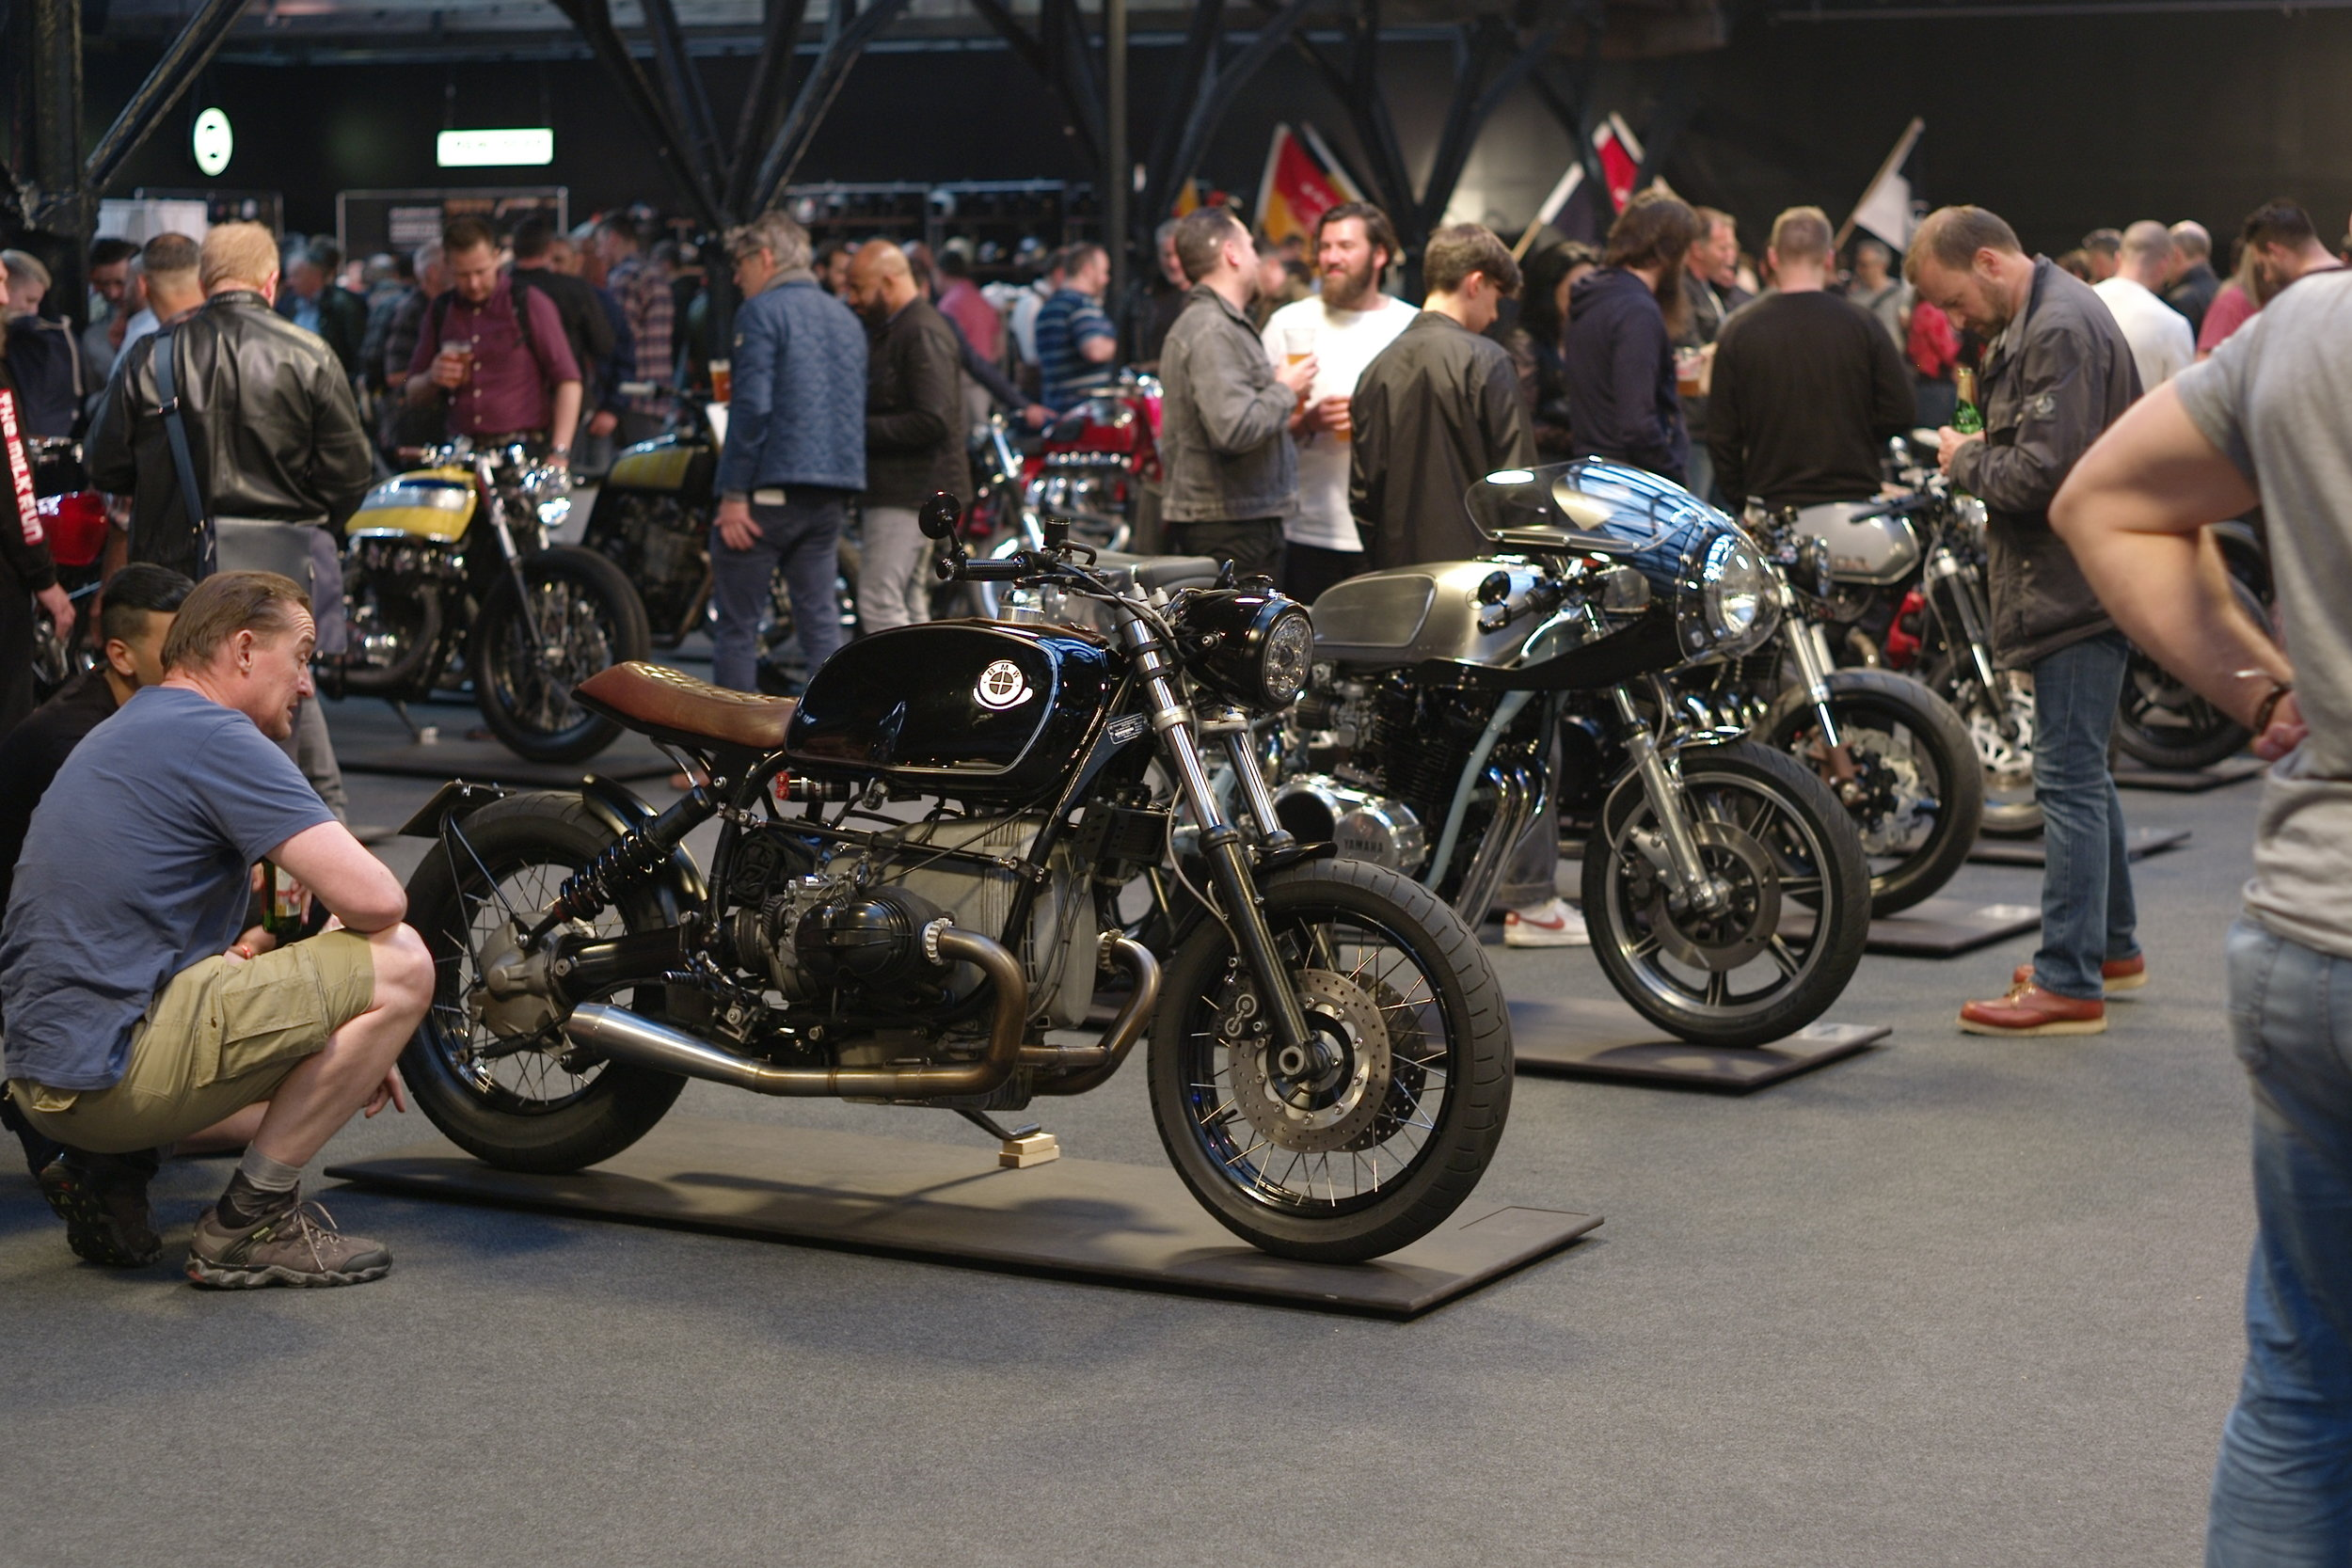 Casual snob - Bikeshed London 2018 37.JPG